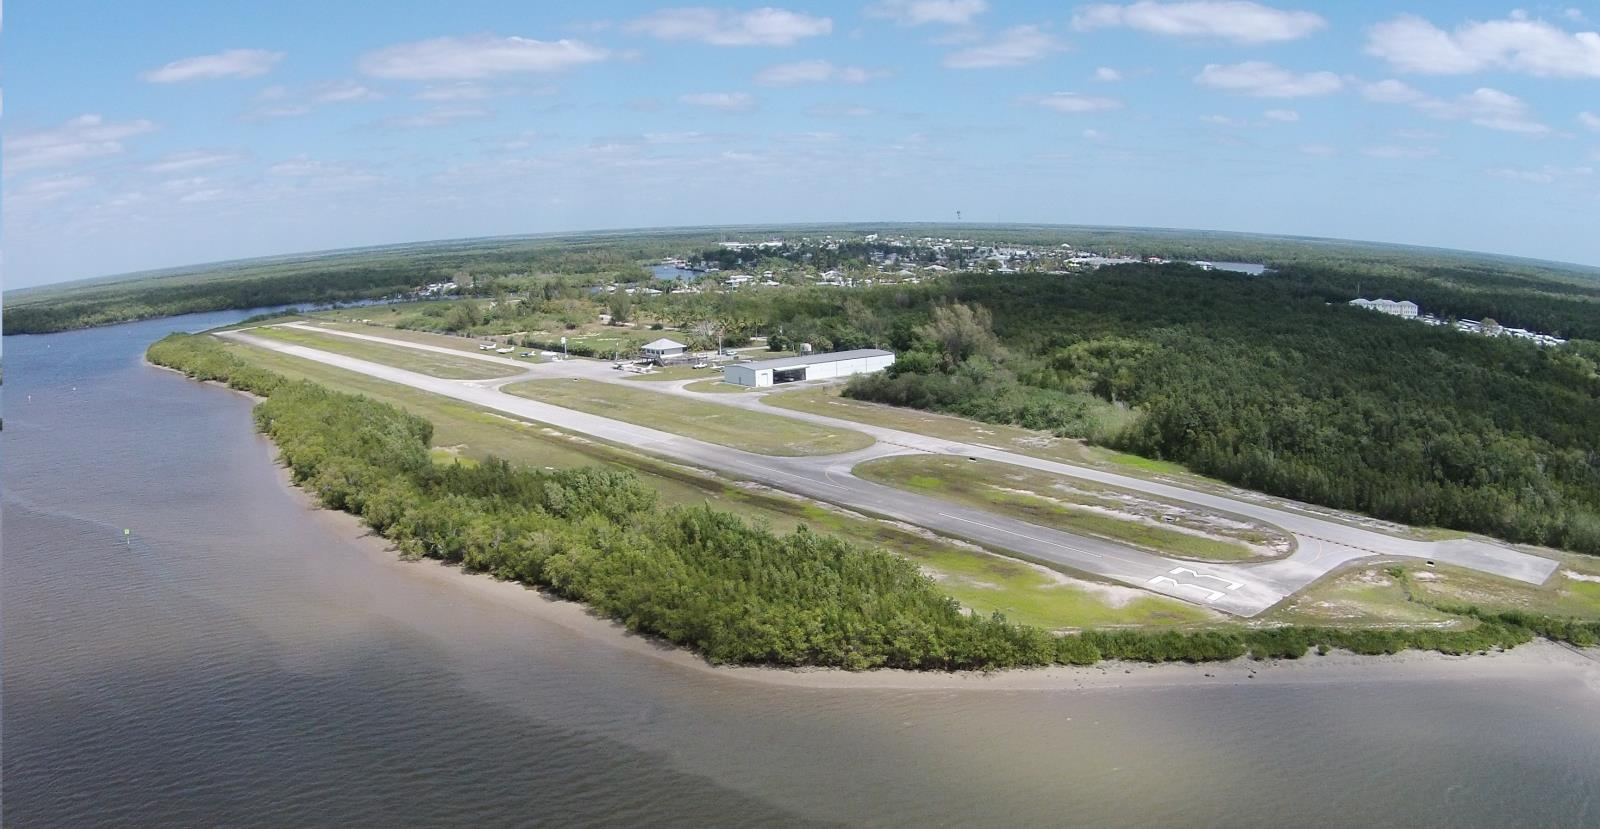 hight resolution of aerial view of everglades airport runways